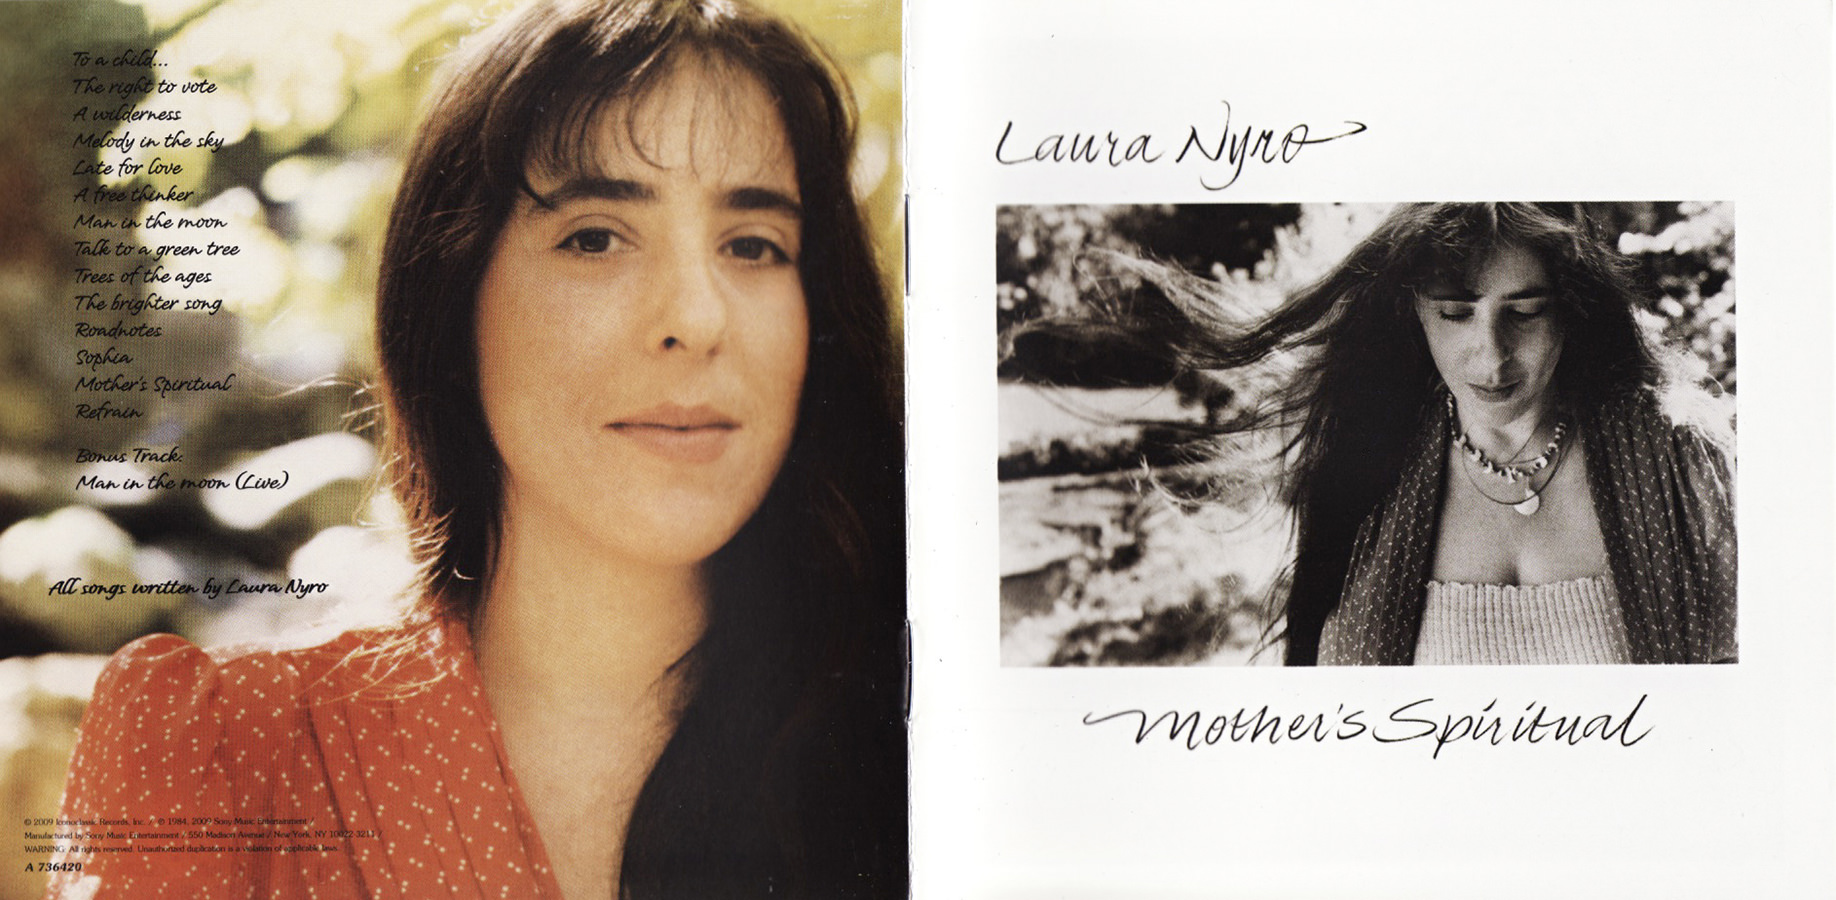 Laura Nyro, Mother's Spiritual